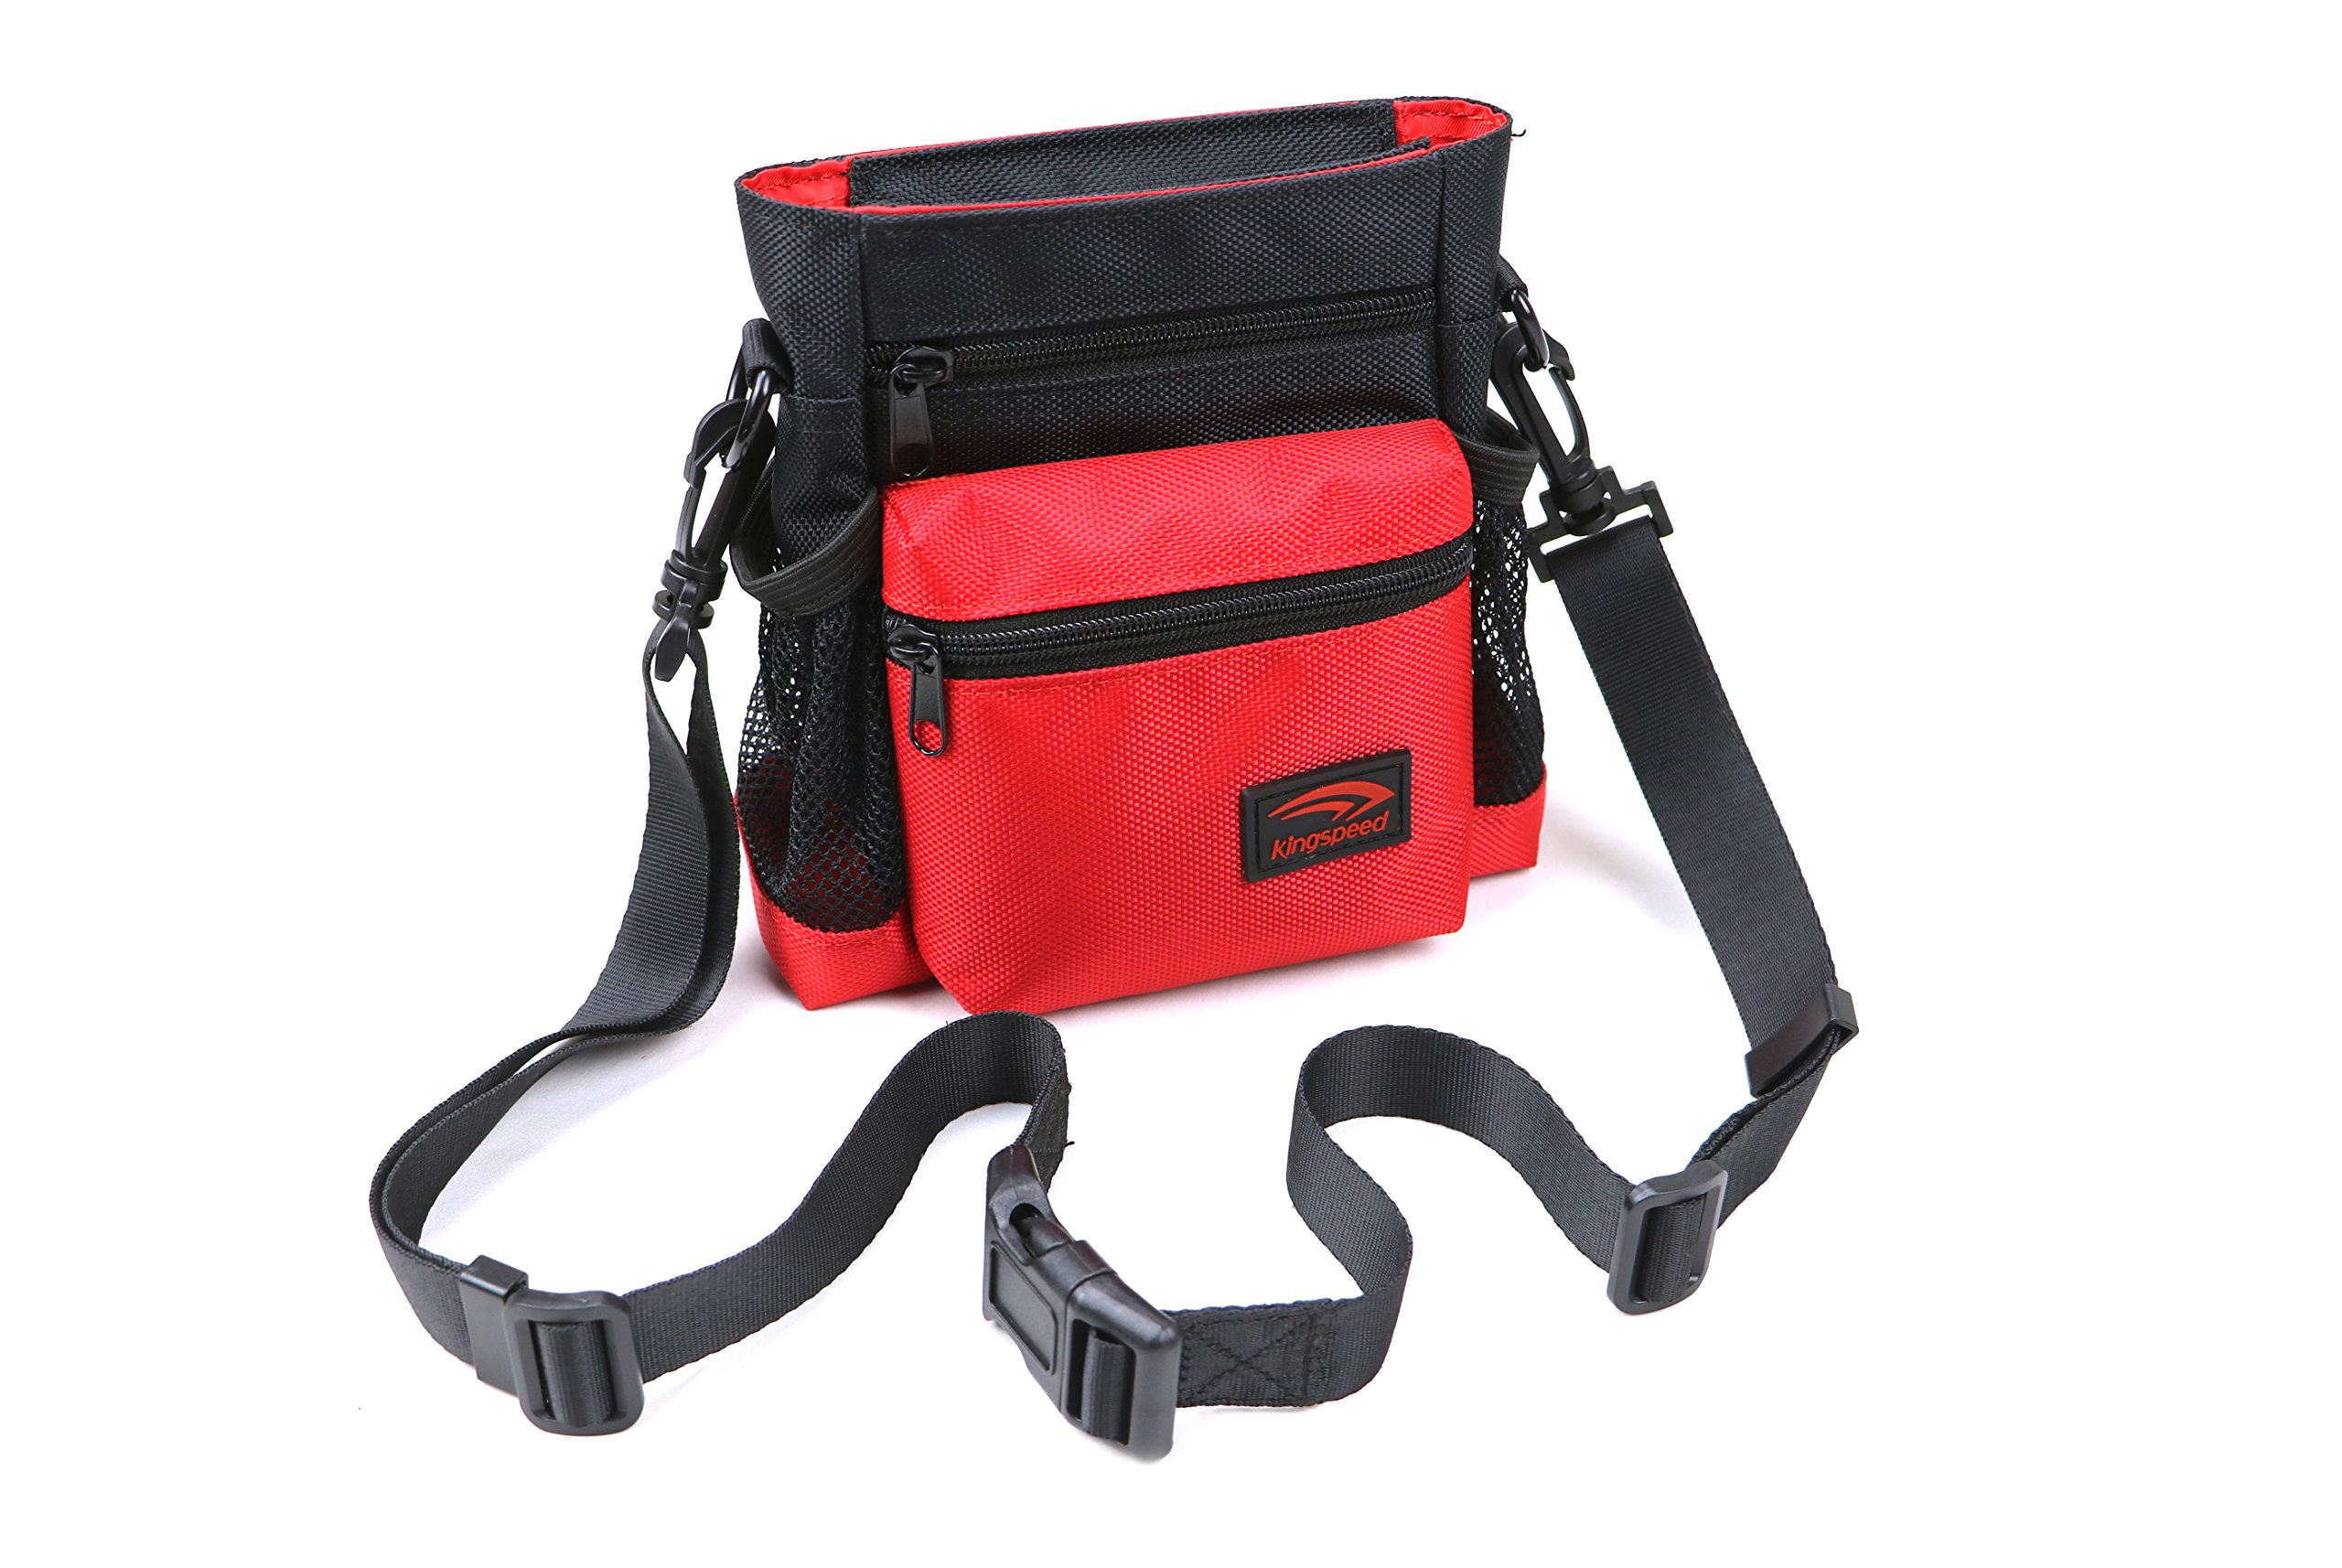 Kingspeed Dog Treat Bag Dog Training Pouch for Treats & Toys Lightweight & Stylish Treat Tote with YKK Zippered Compartments & Mesh Pockets Shoulder & Waist Pet Treat Pouch Red & Black